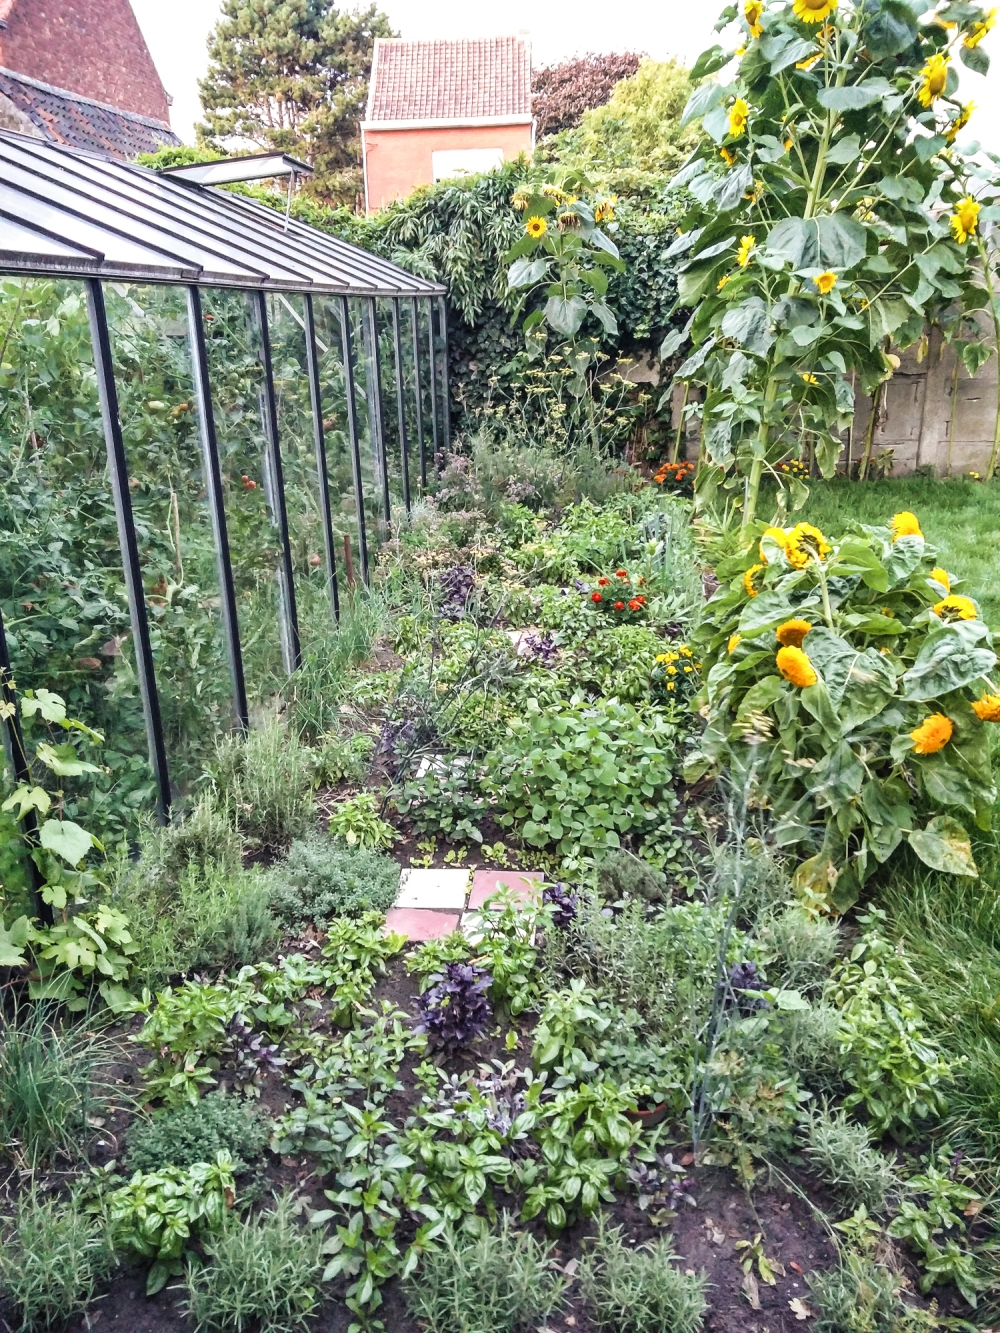 Herb garden with sunflowers